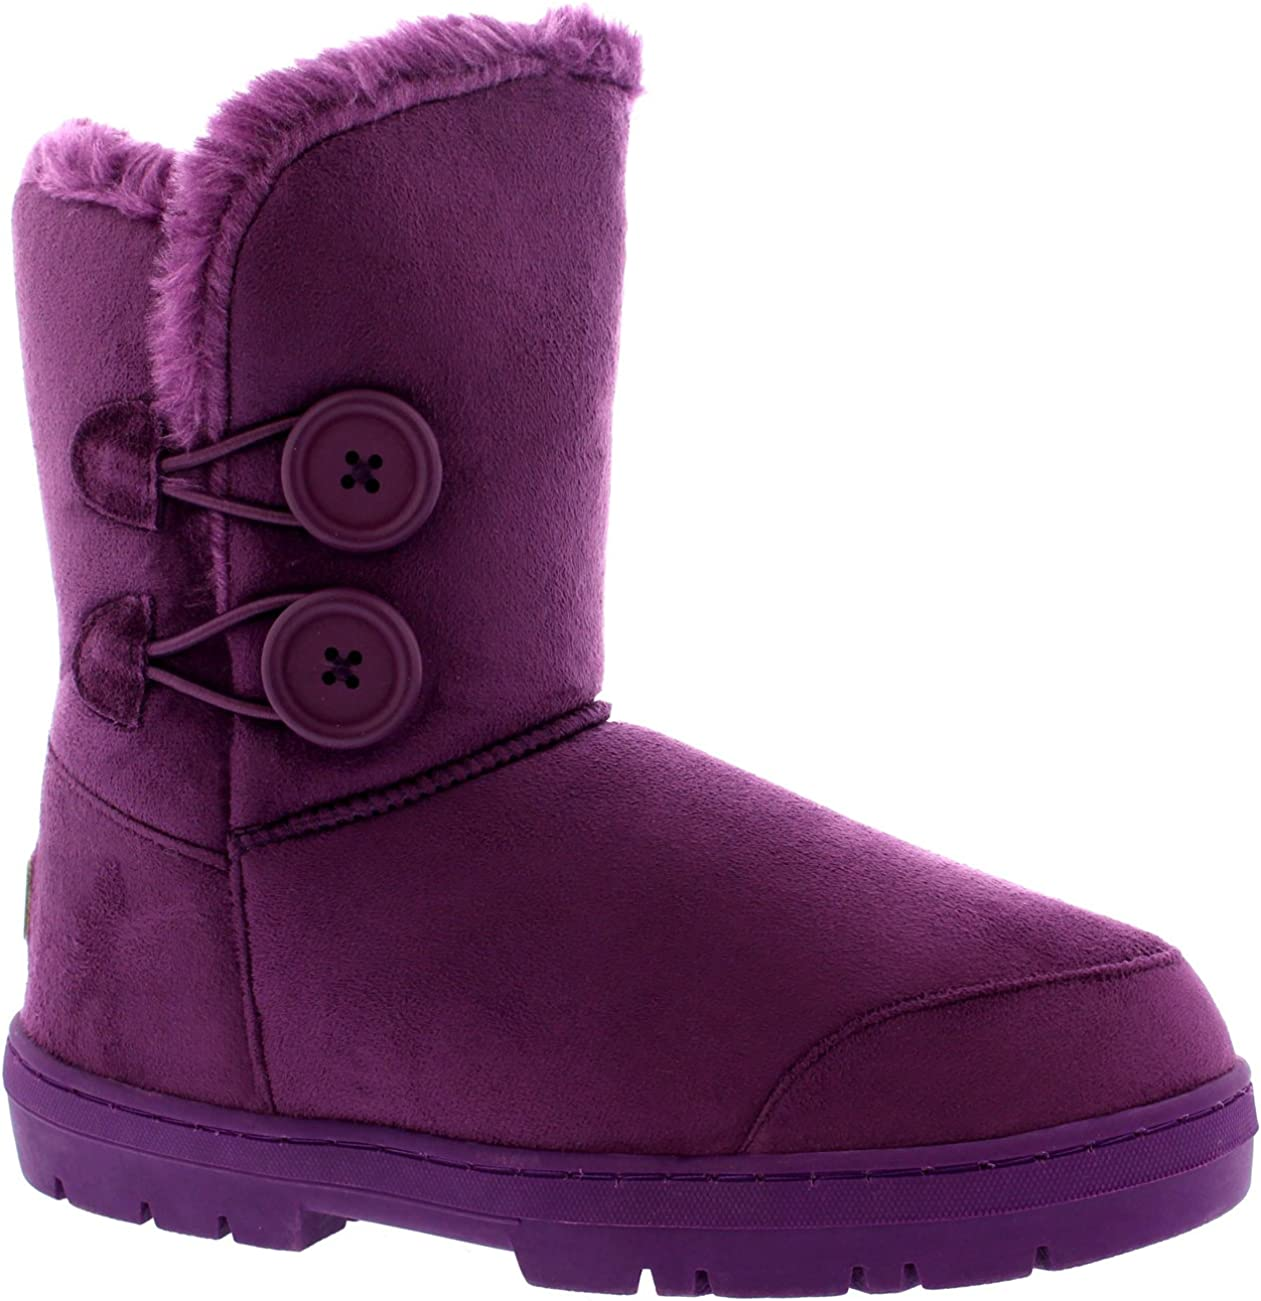 Holly Womens Twin Button Waterproof Winter Snow Boots